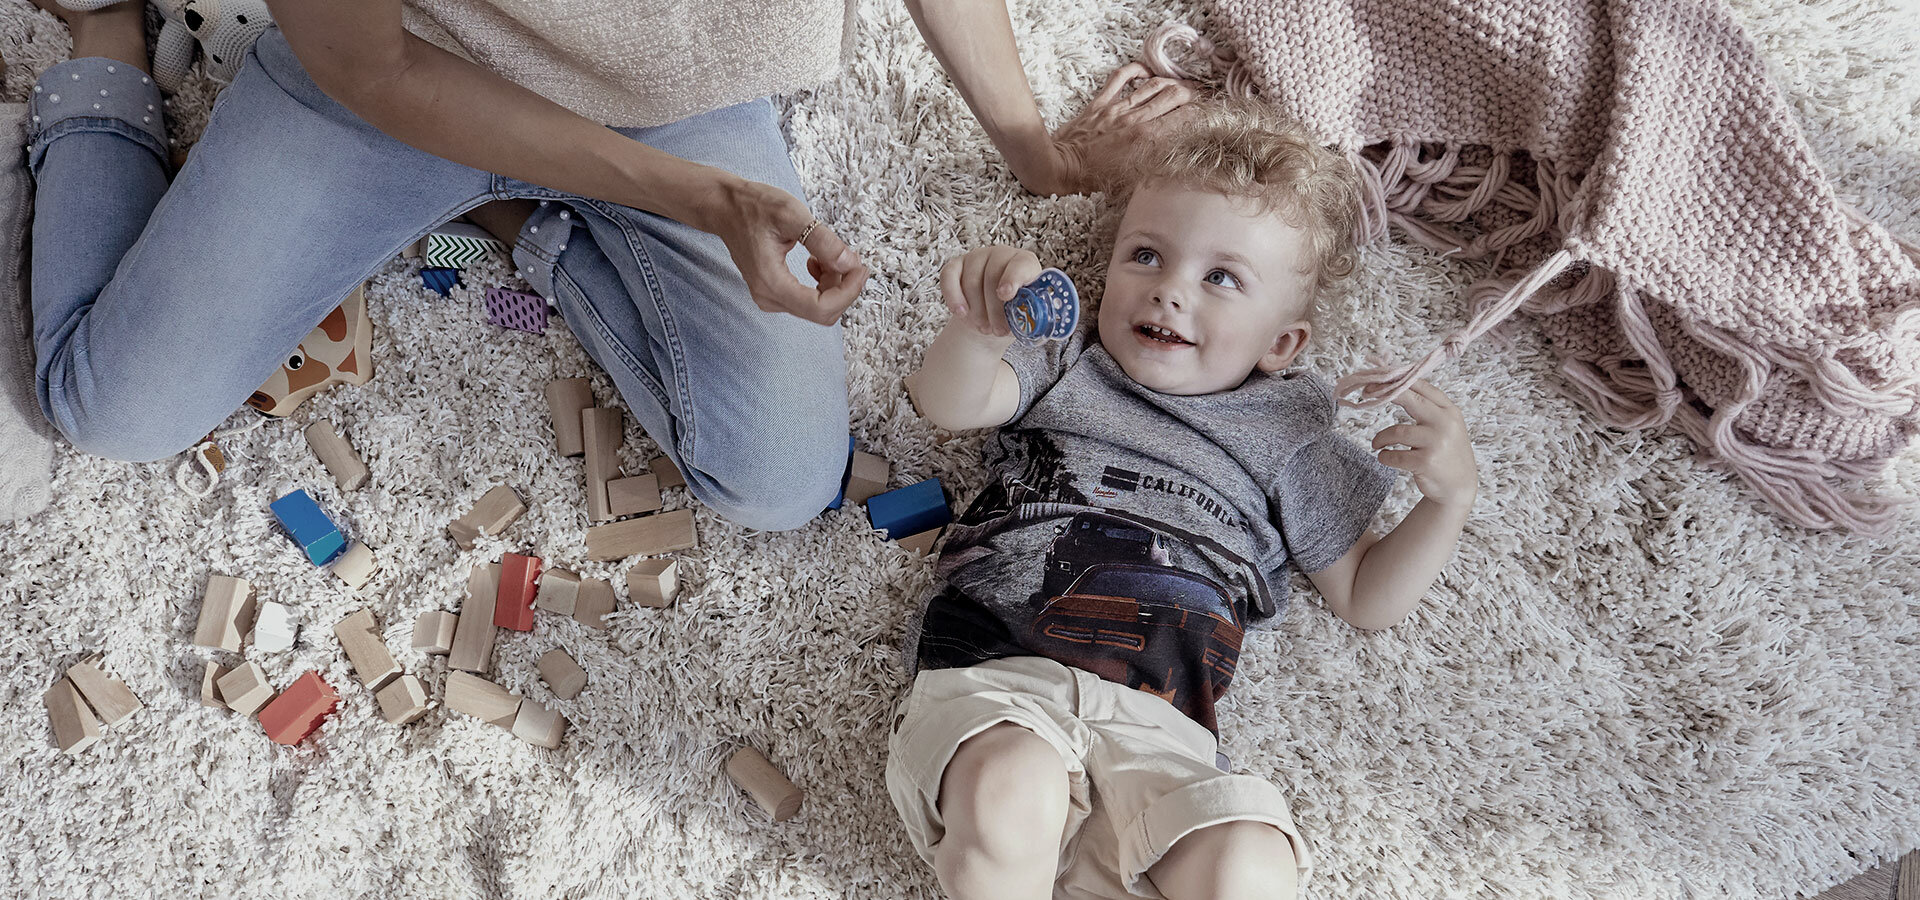 A small smiling boy is lying on a rug with a soother pacifier LOVI in his hand.